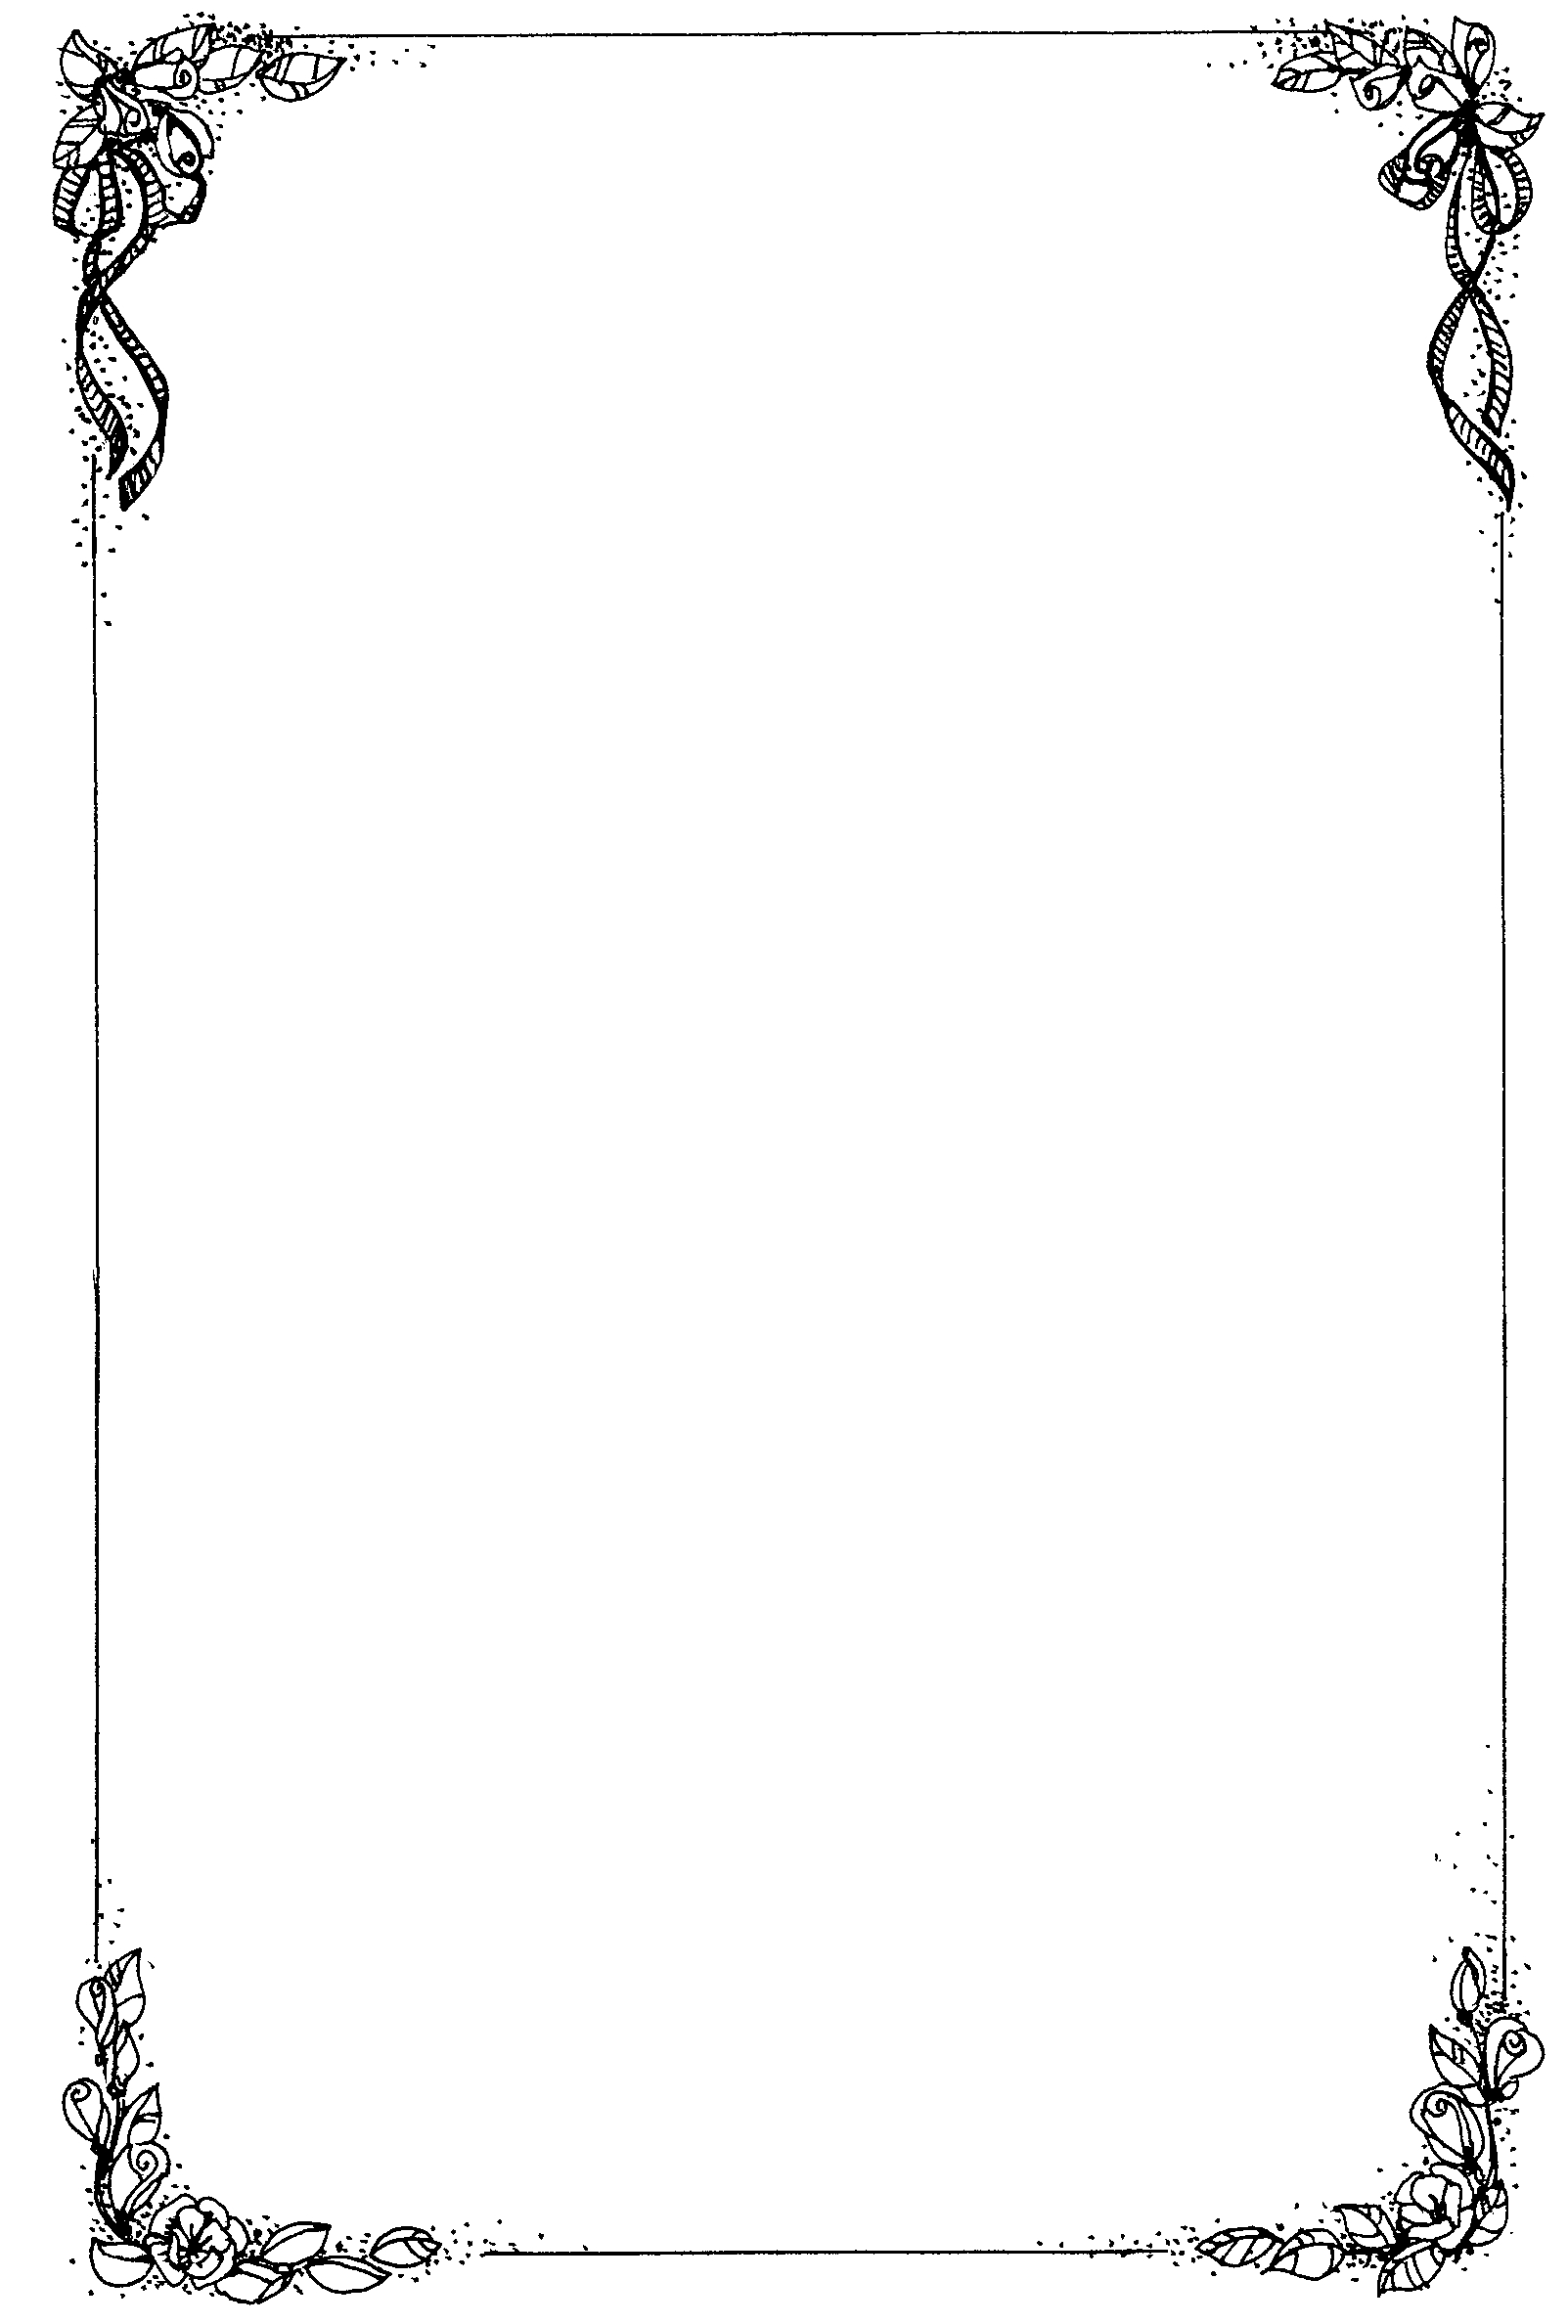 Floral Border For Word Document